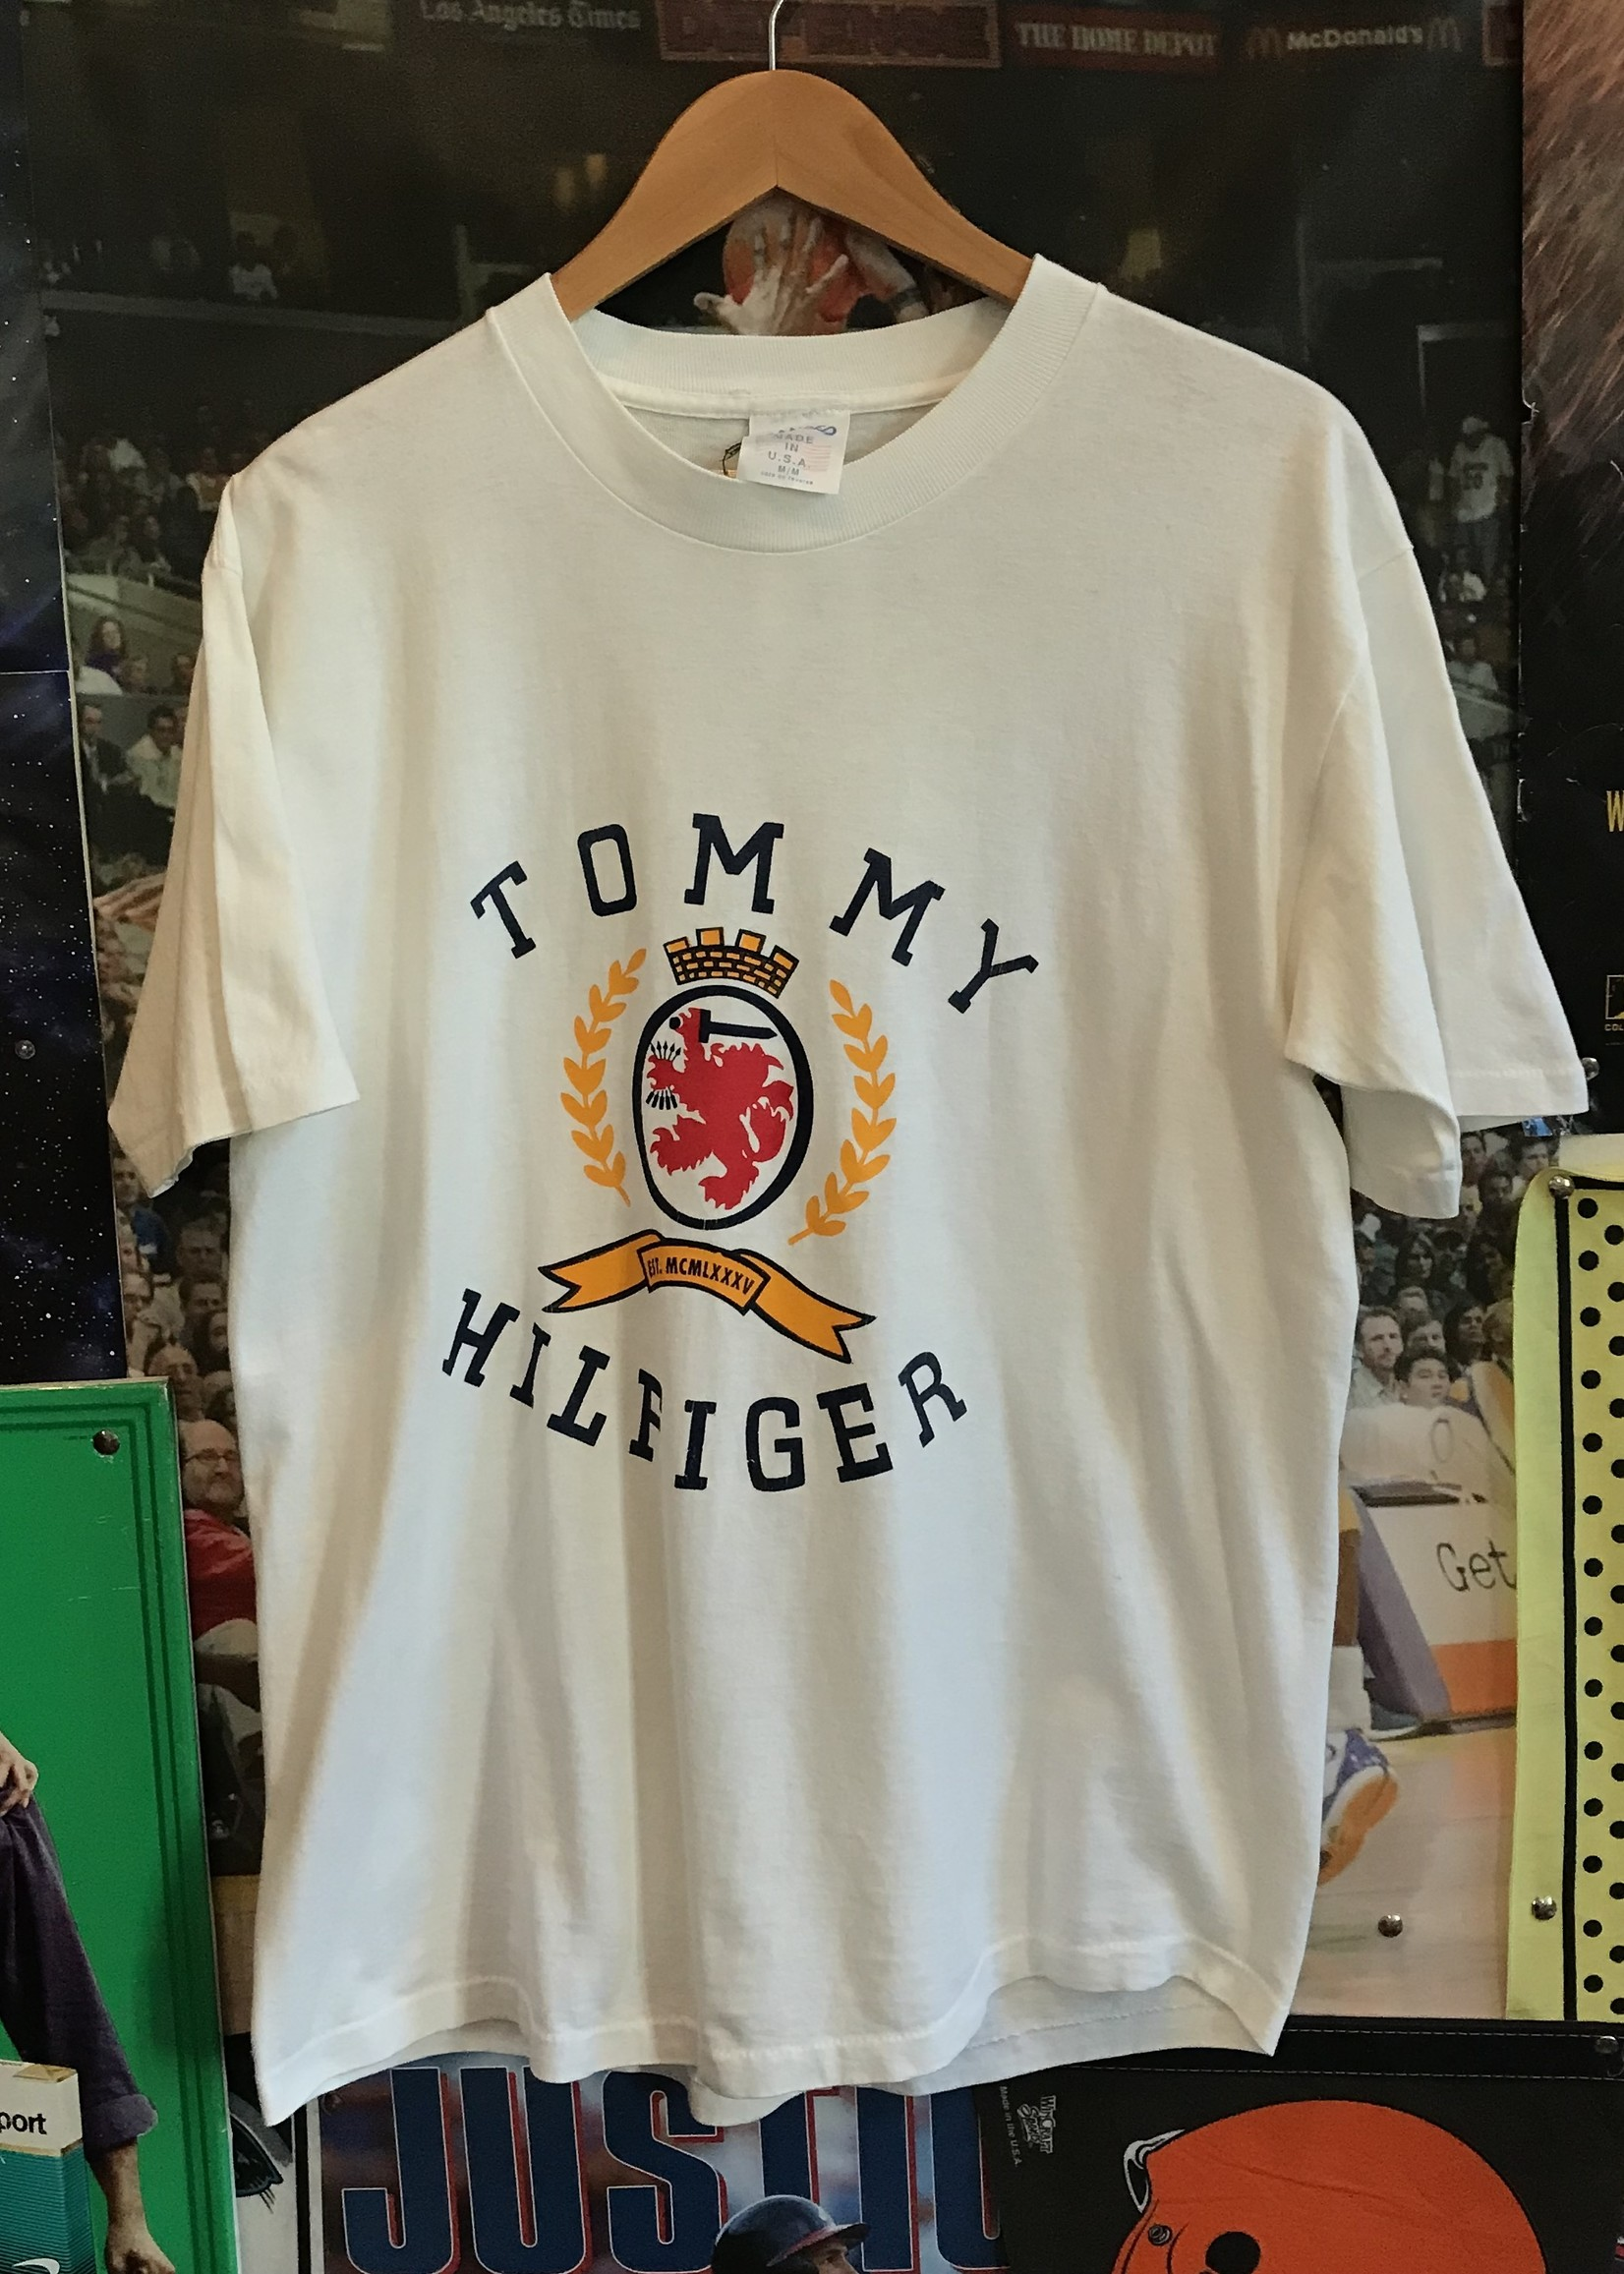 4662tommy white tee sz. M